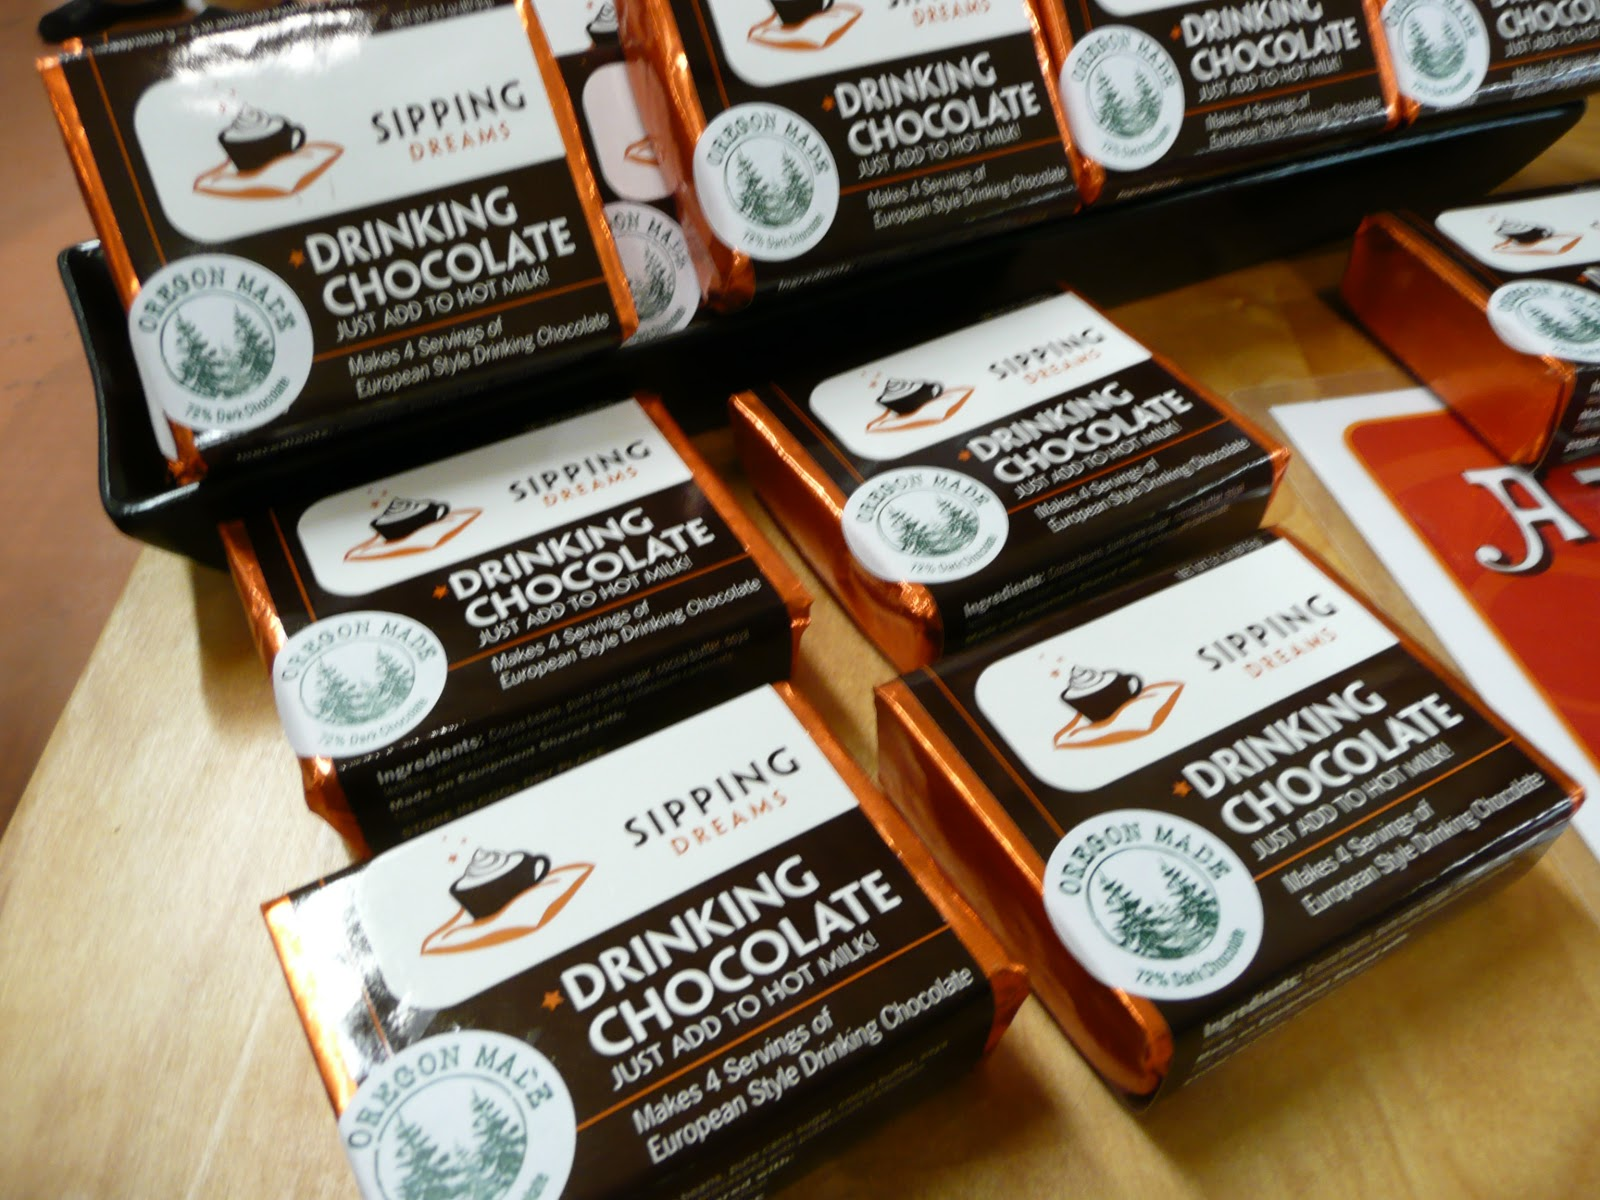 Finding Fine Chocolate: Sipping Dreams Drinking Chocolate